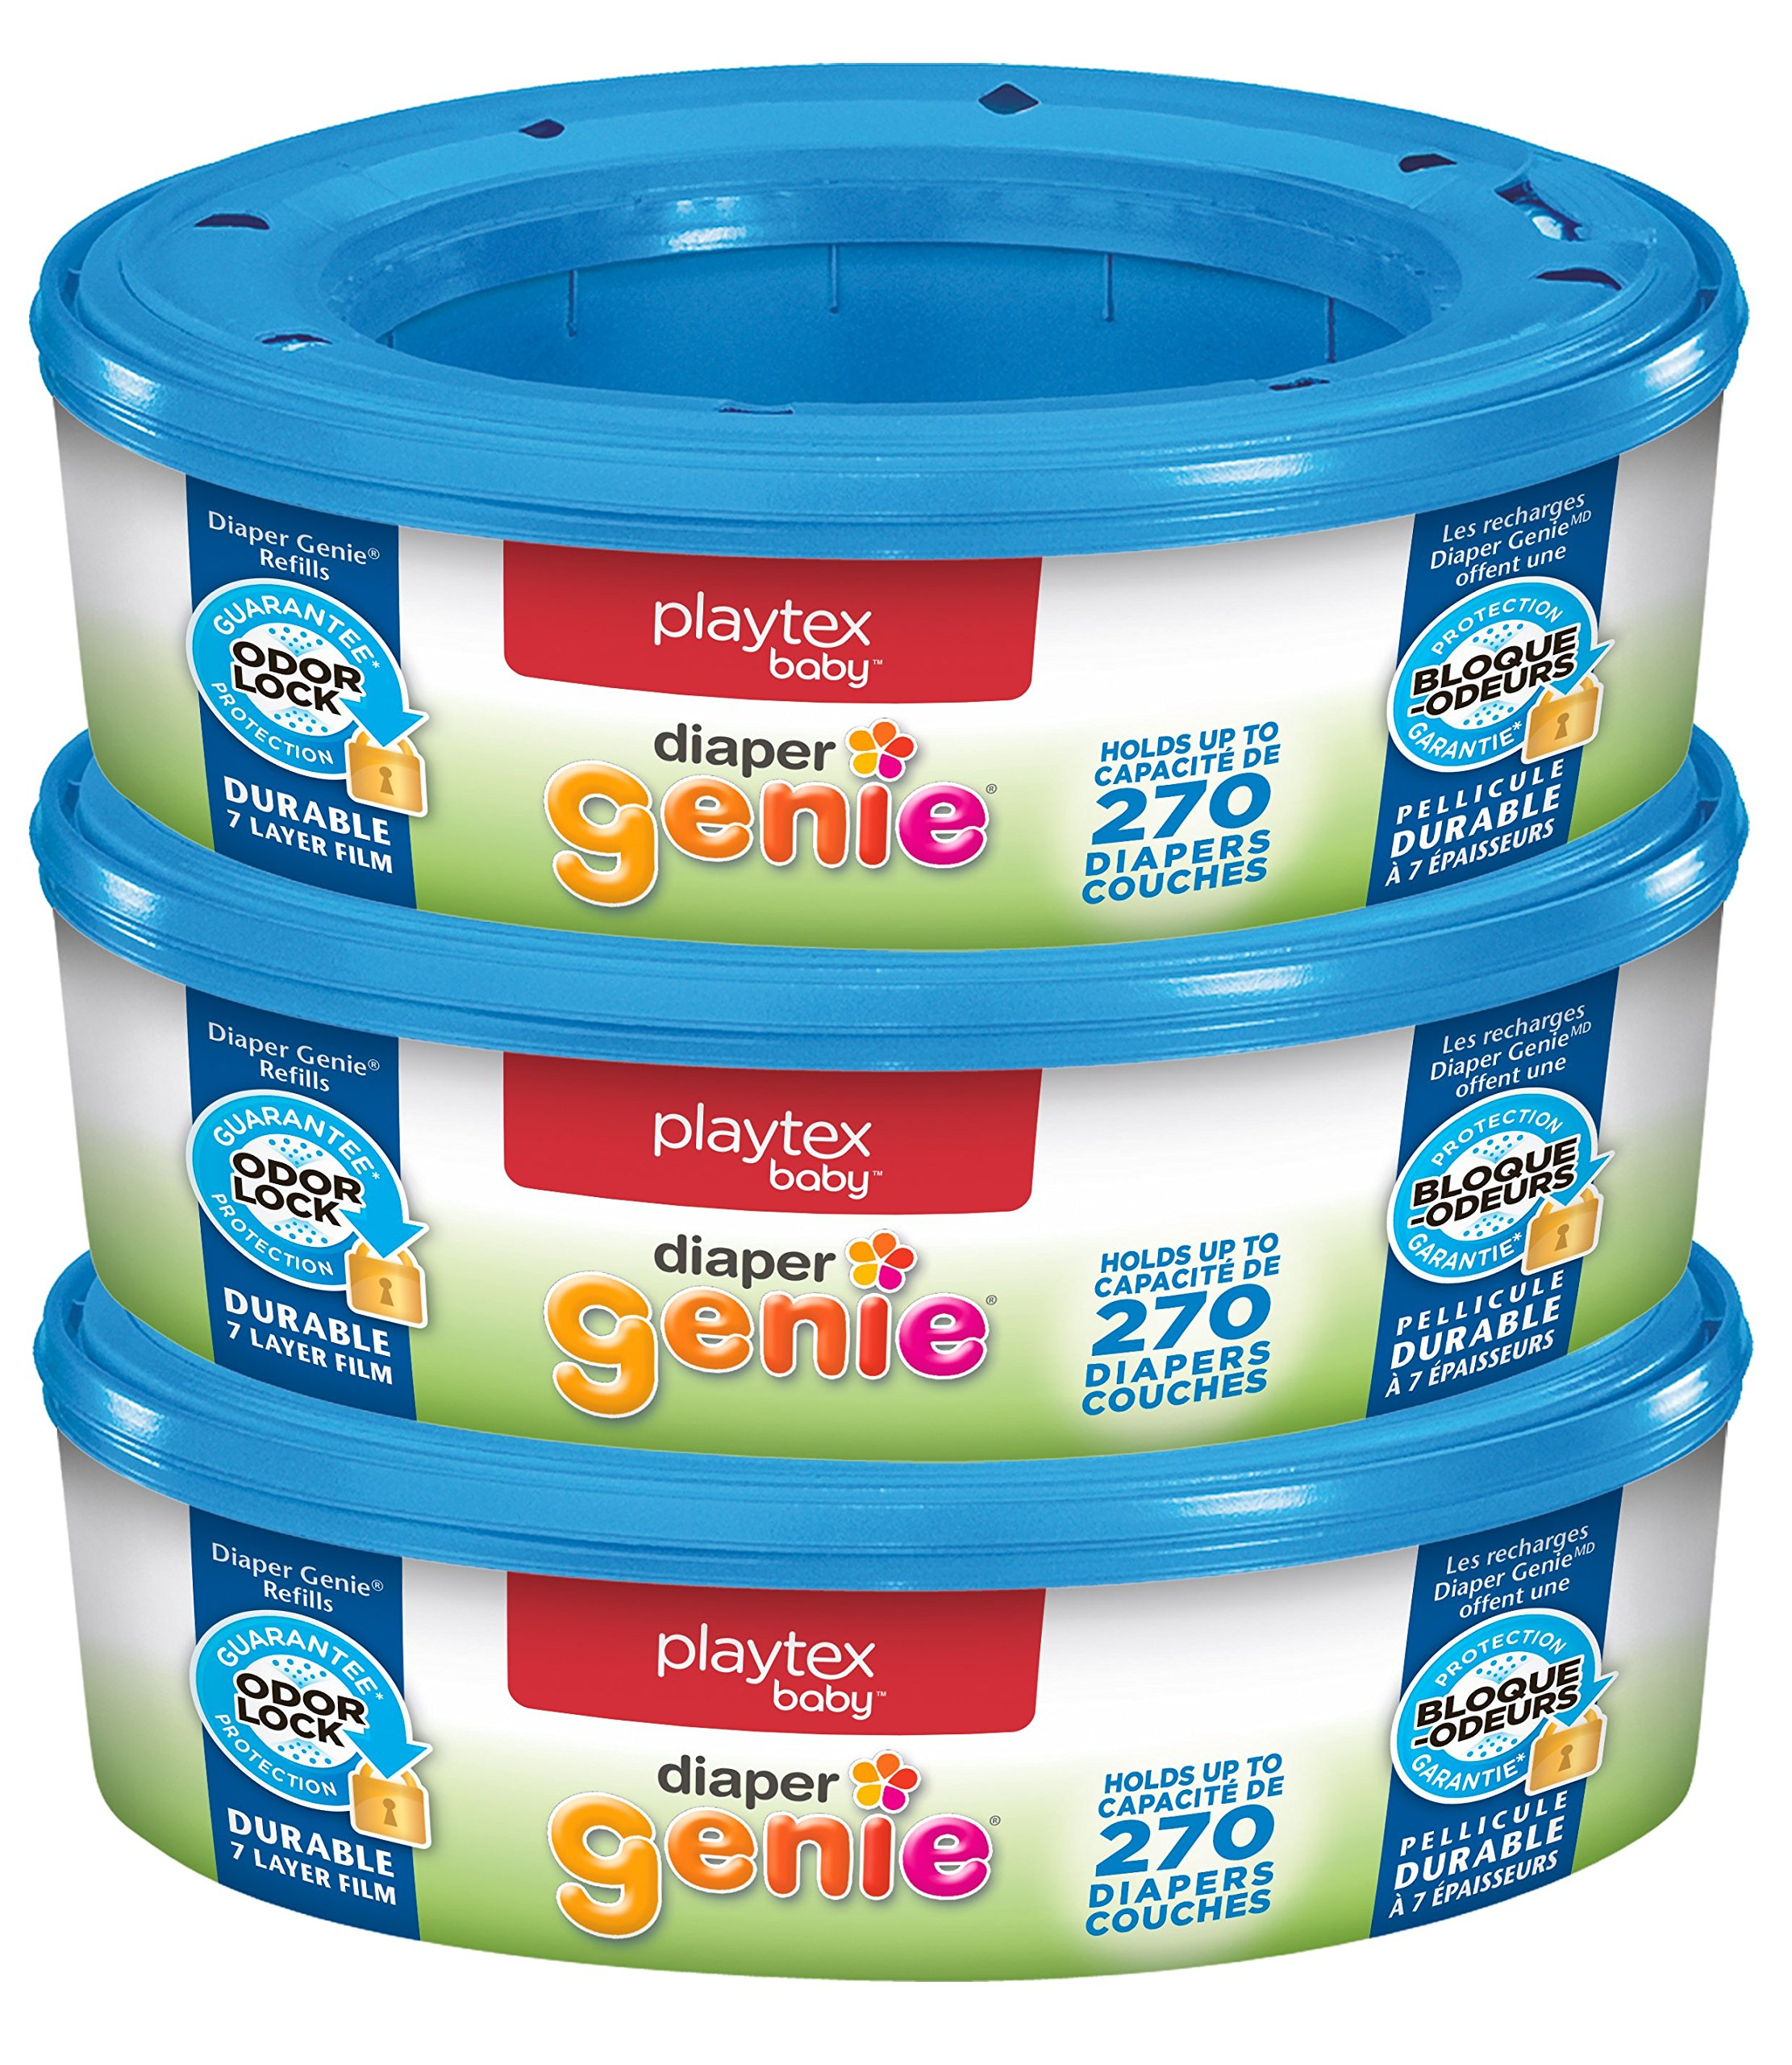 Playtex Diaper Genie Refill (810 Count Total - 3 Pack of 270 Each) by Playtex